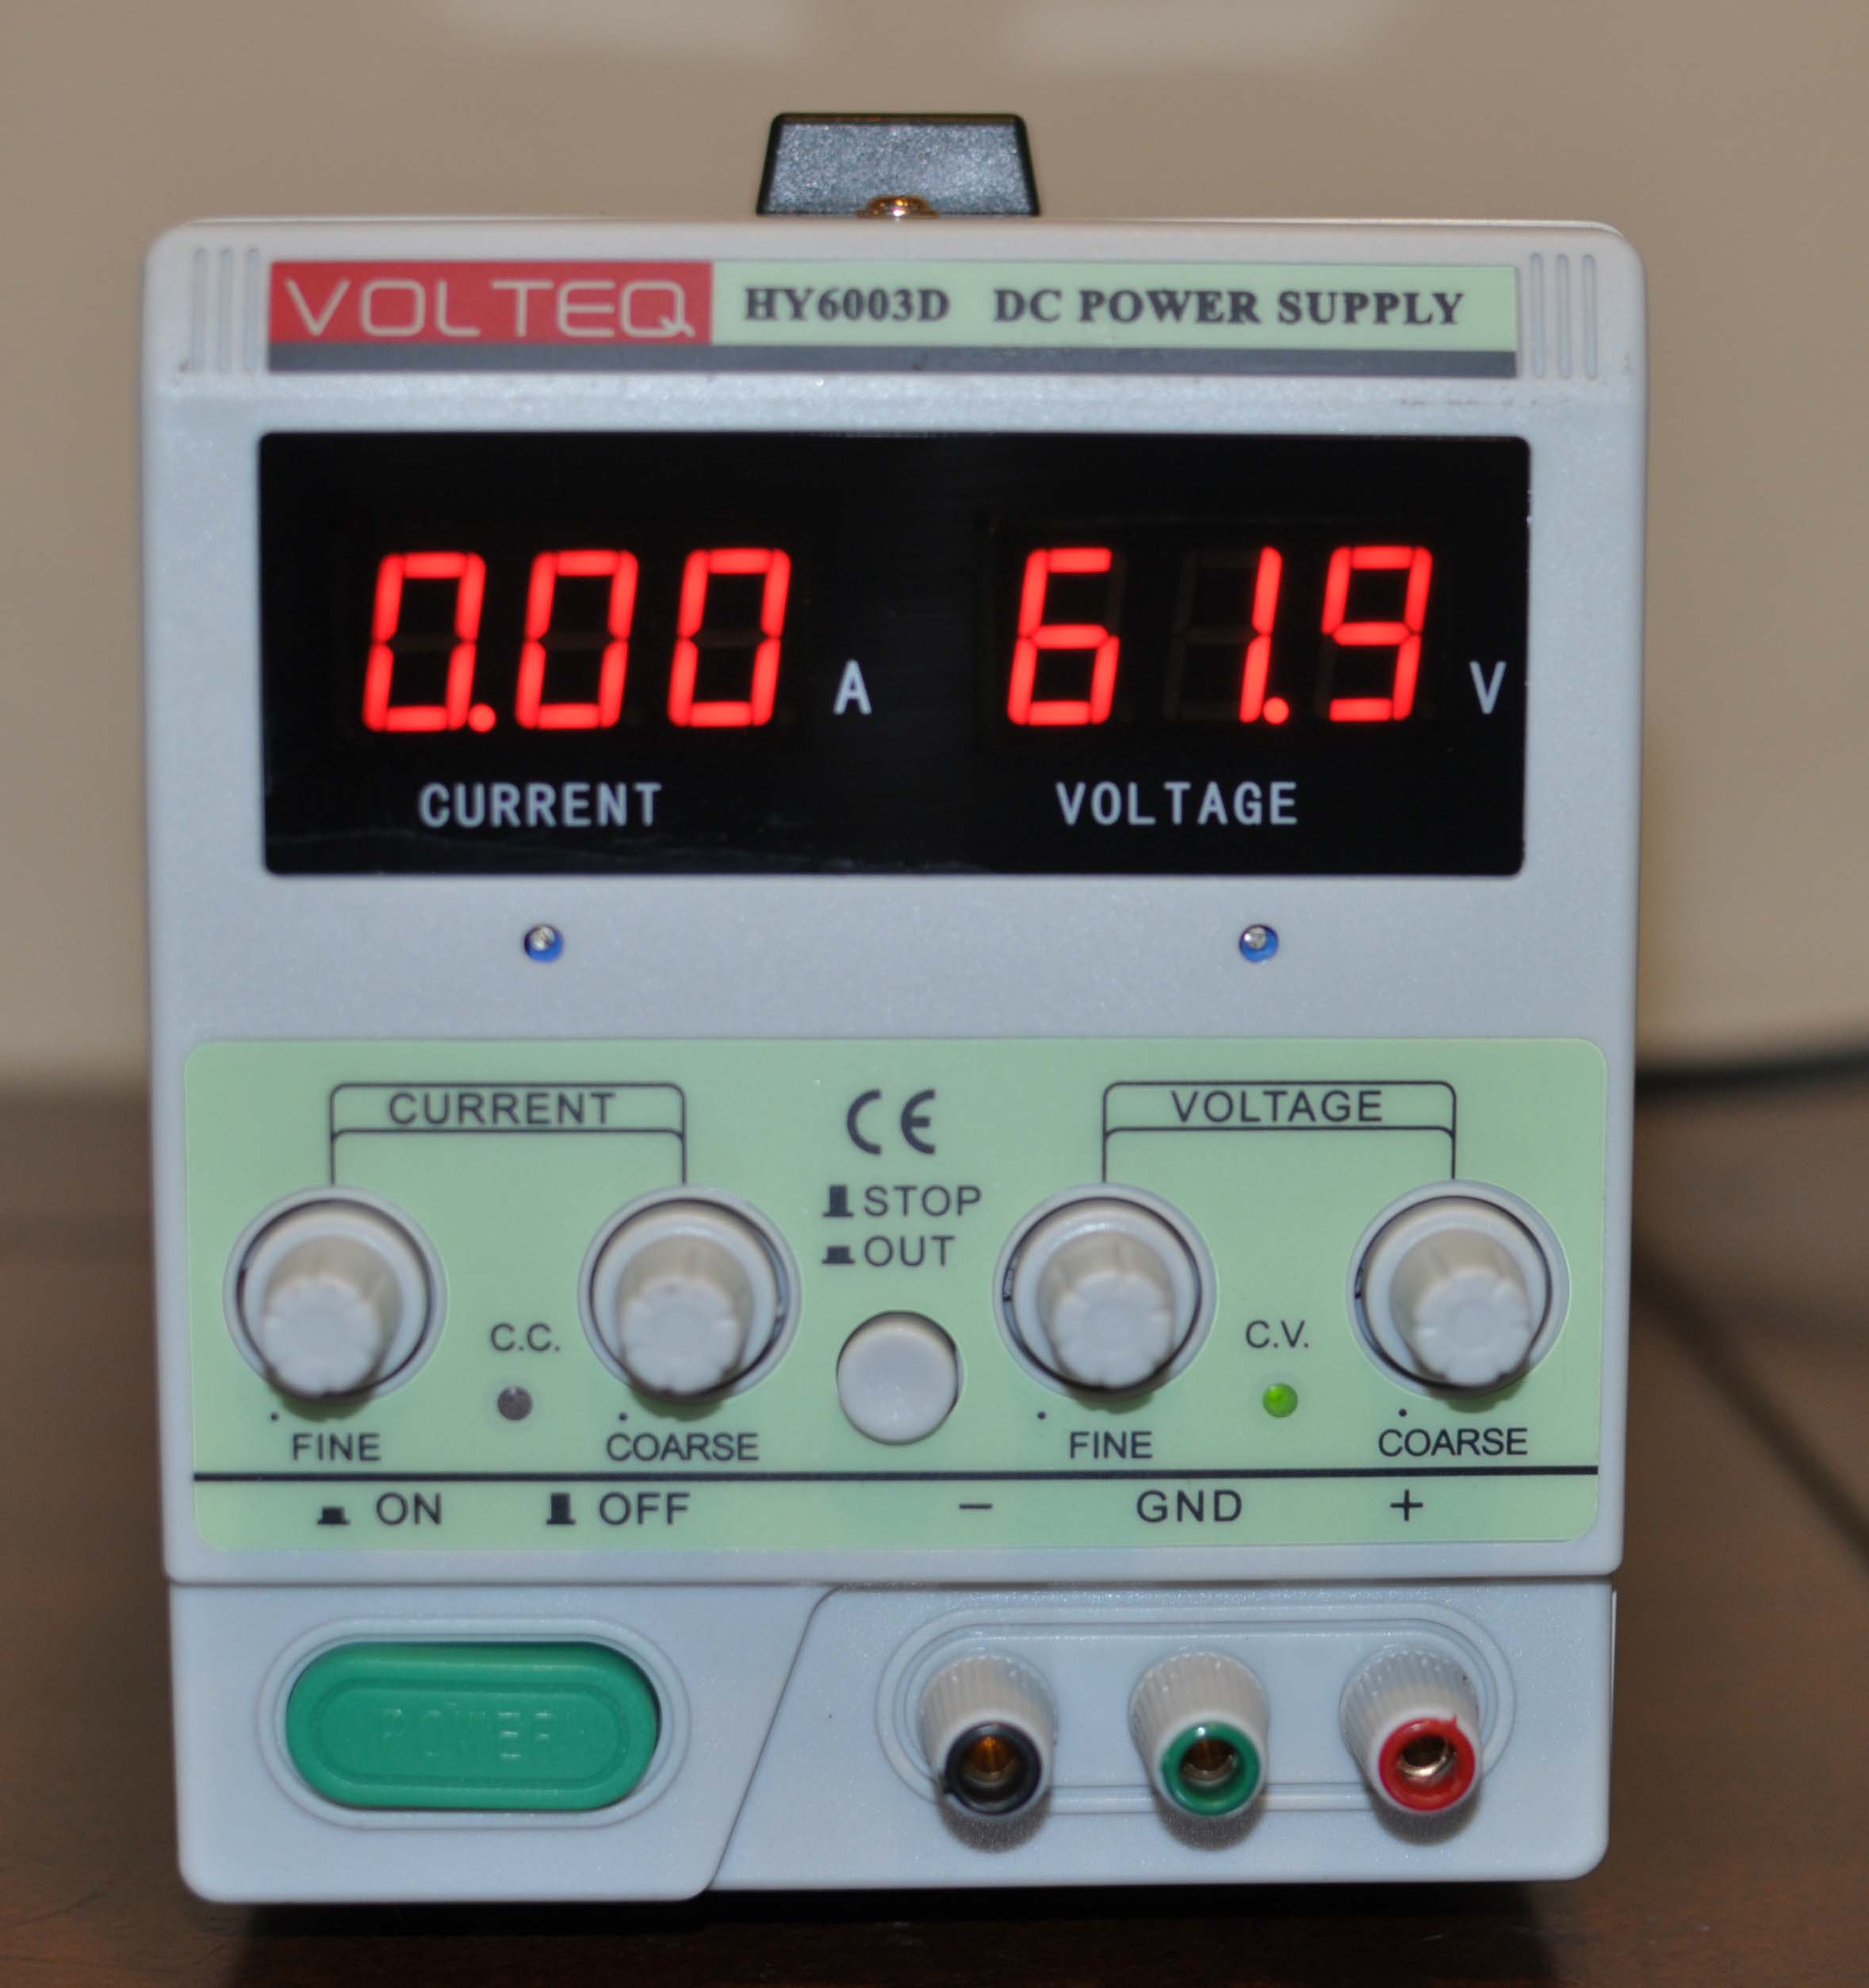 Volteq Linear DC Power Supply - Volteq - Reliable Regulated